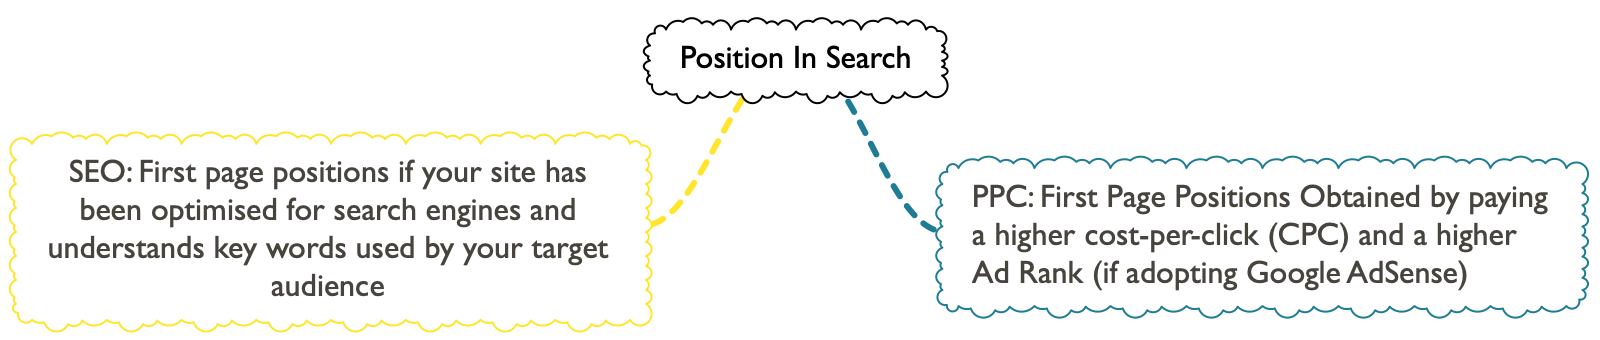 Position in search SEO PPC